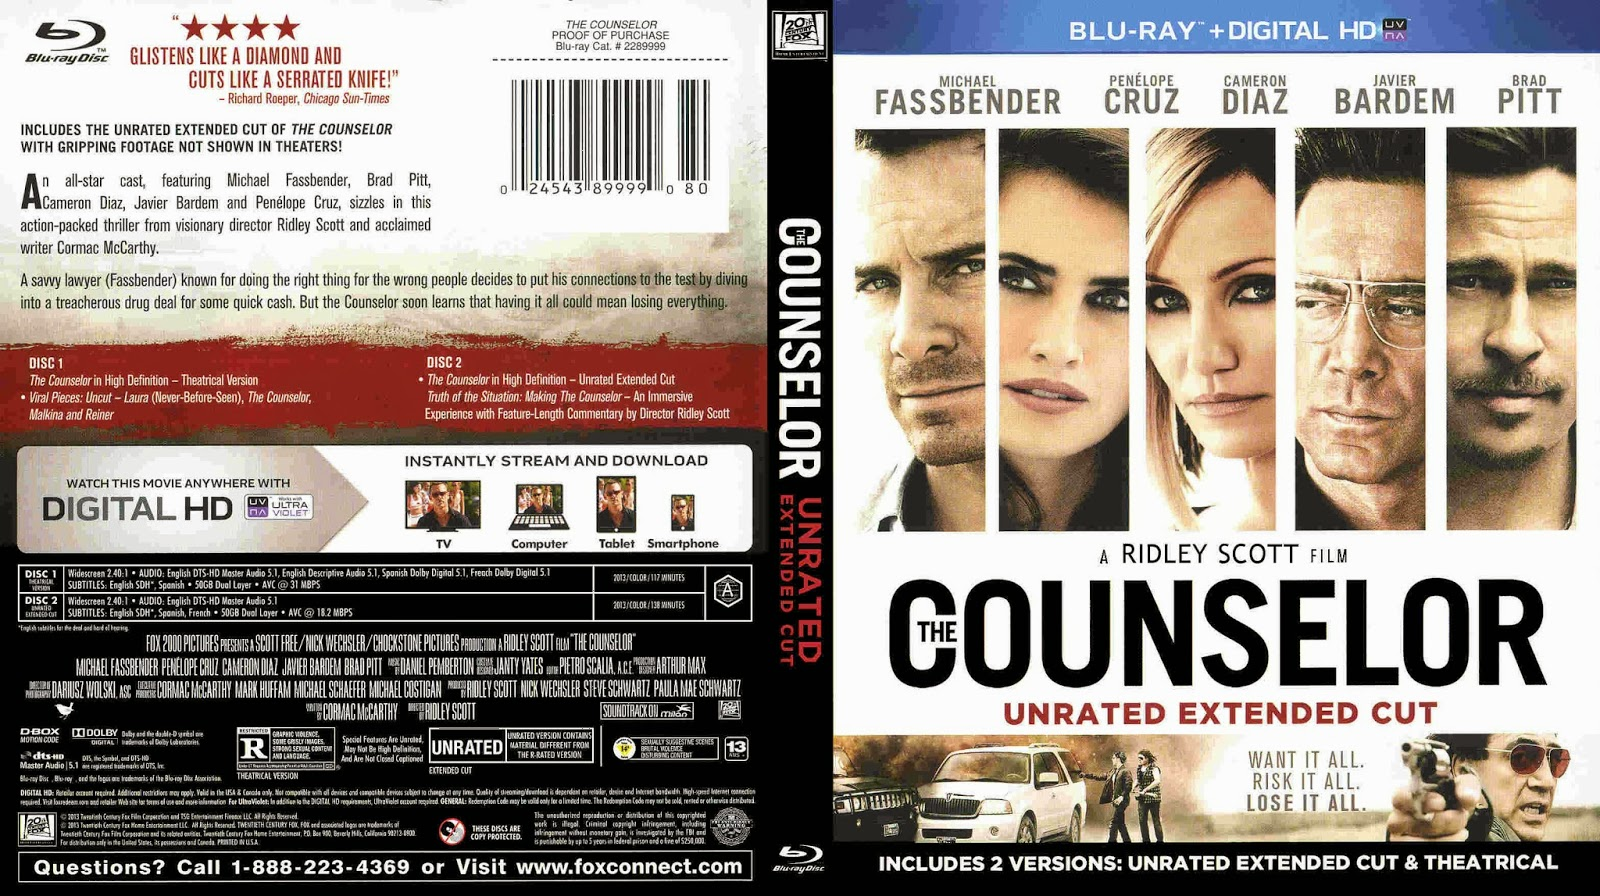 The Counselor: Movie The Counselor 2013